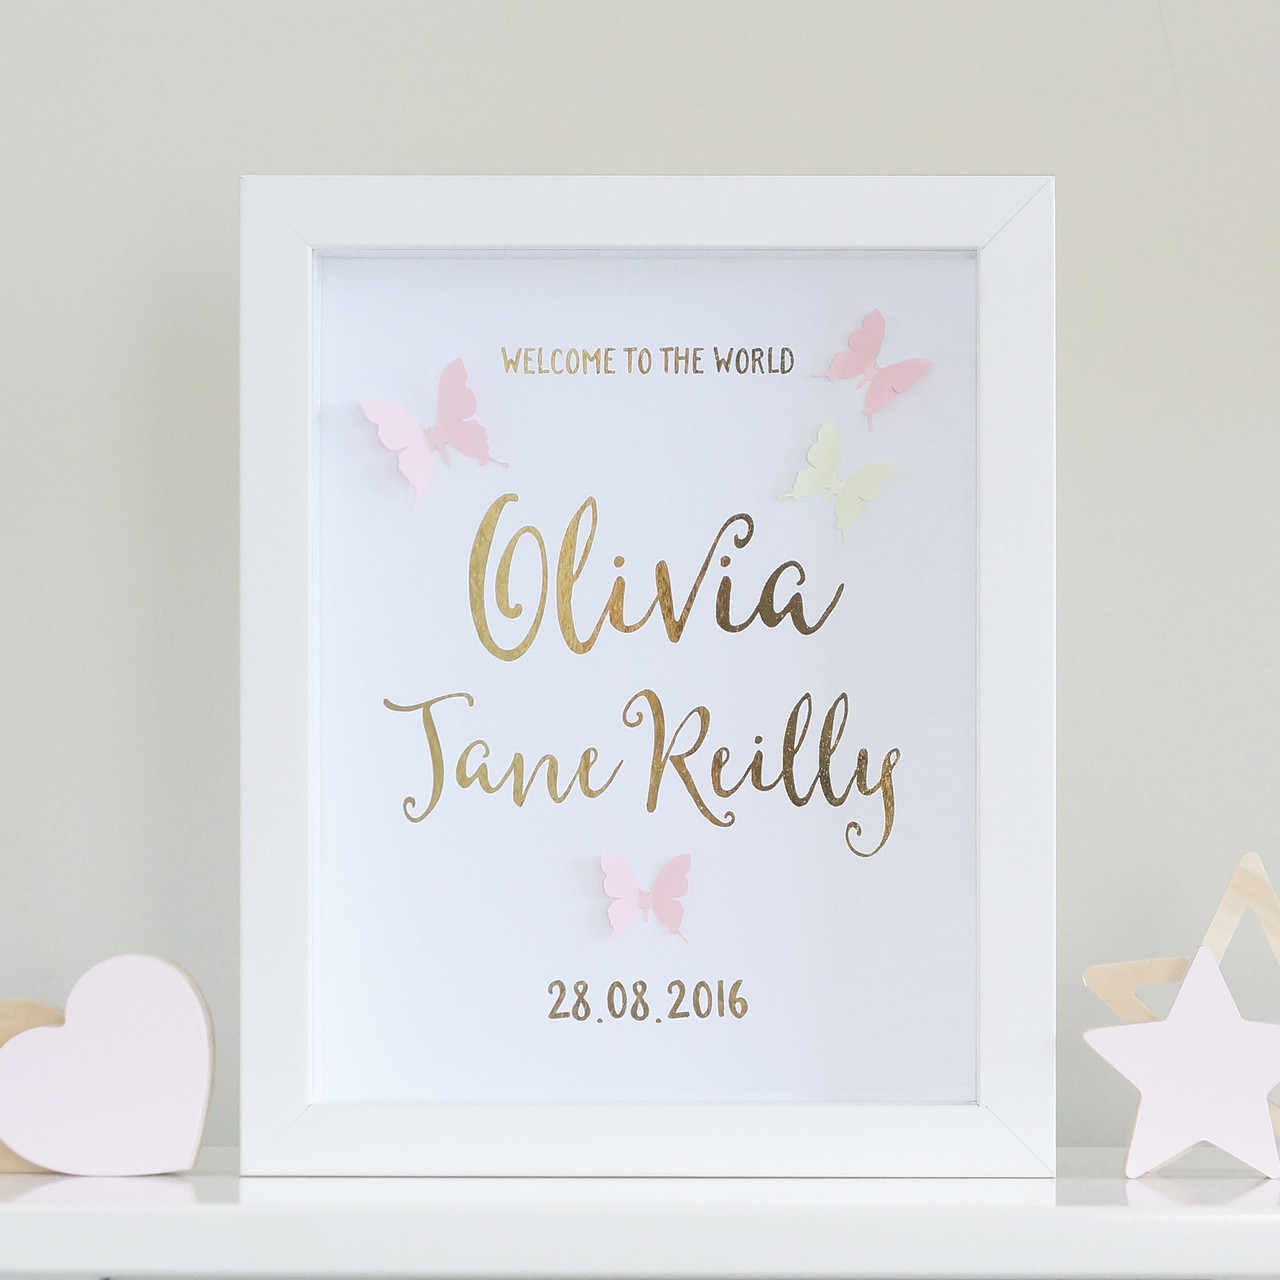 baby announcement frame - Selom.digitalsite.co